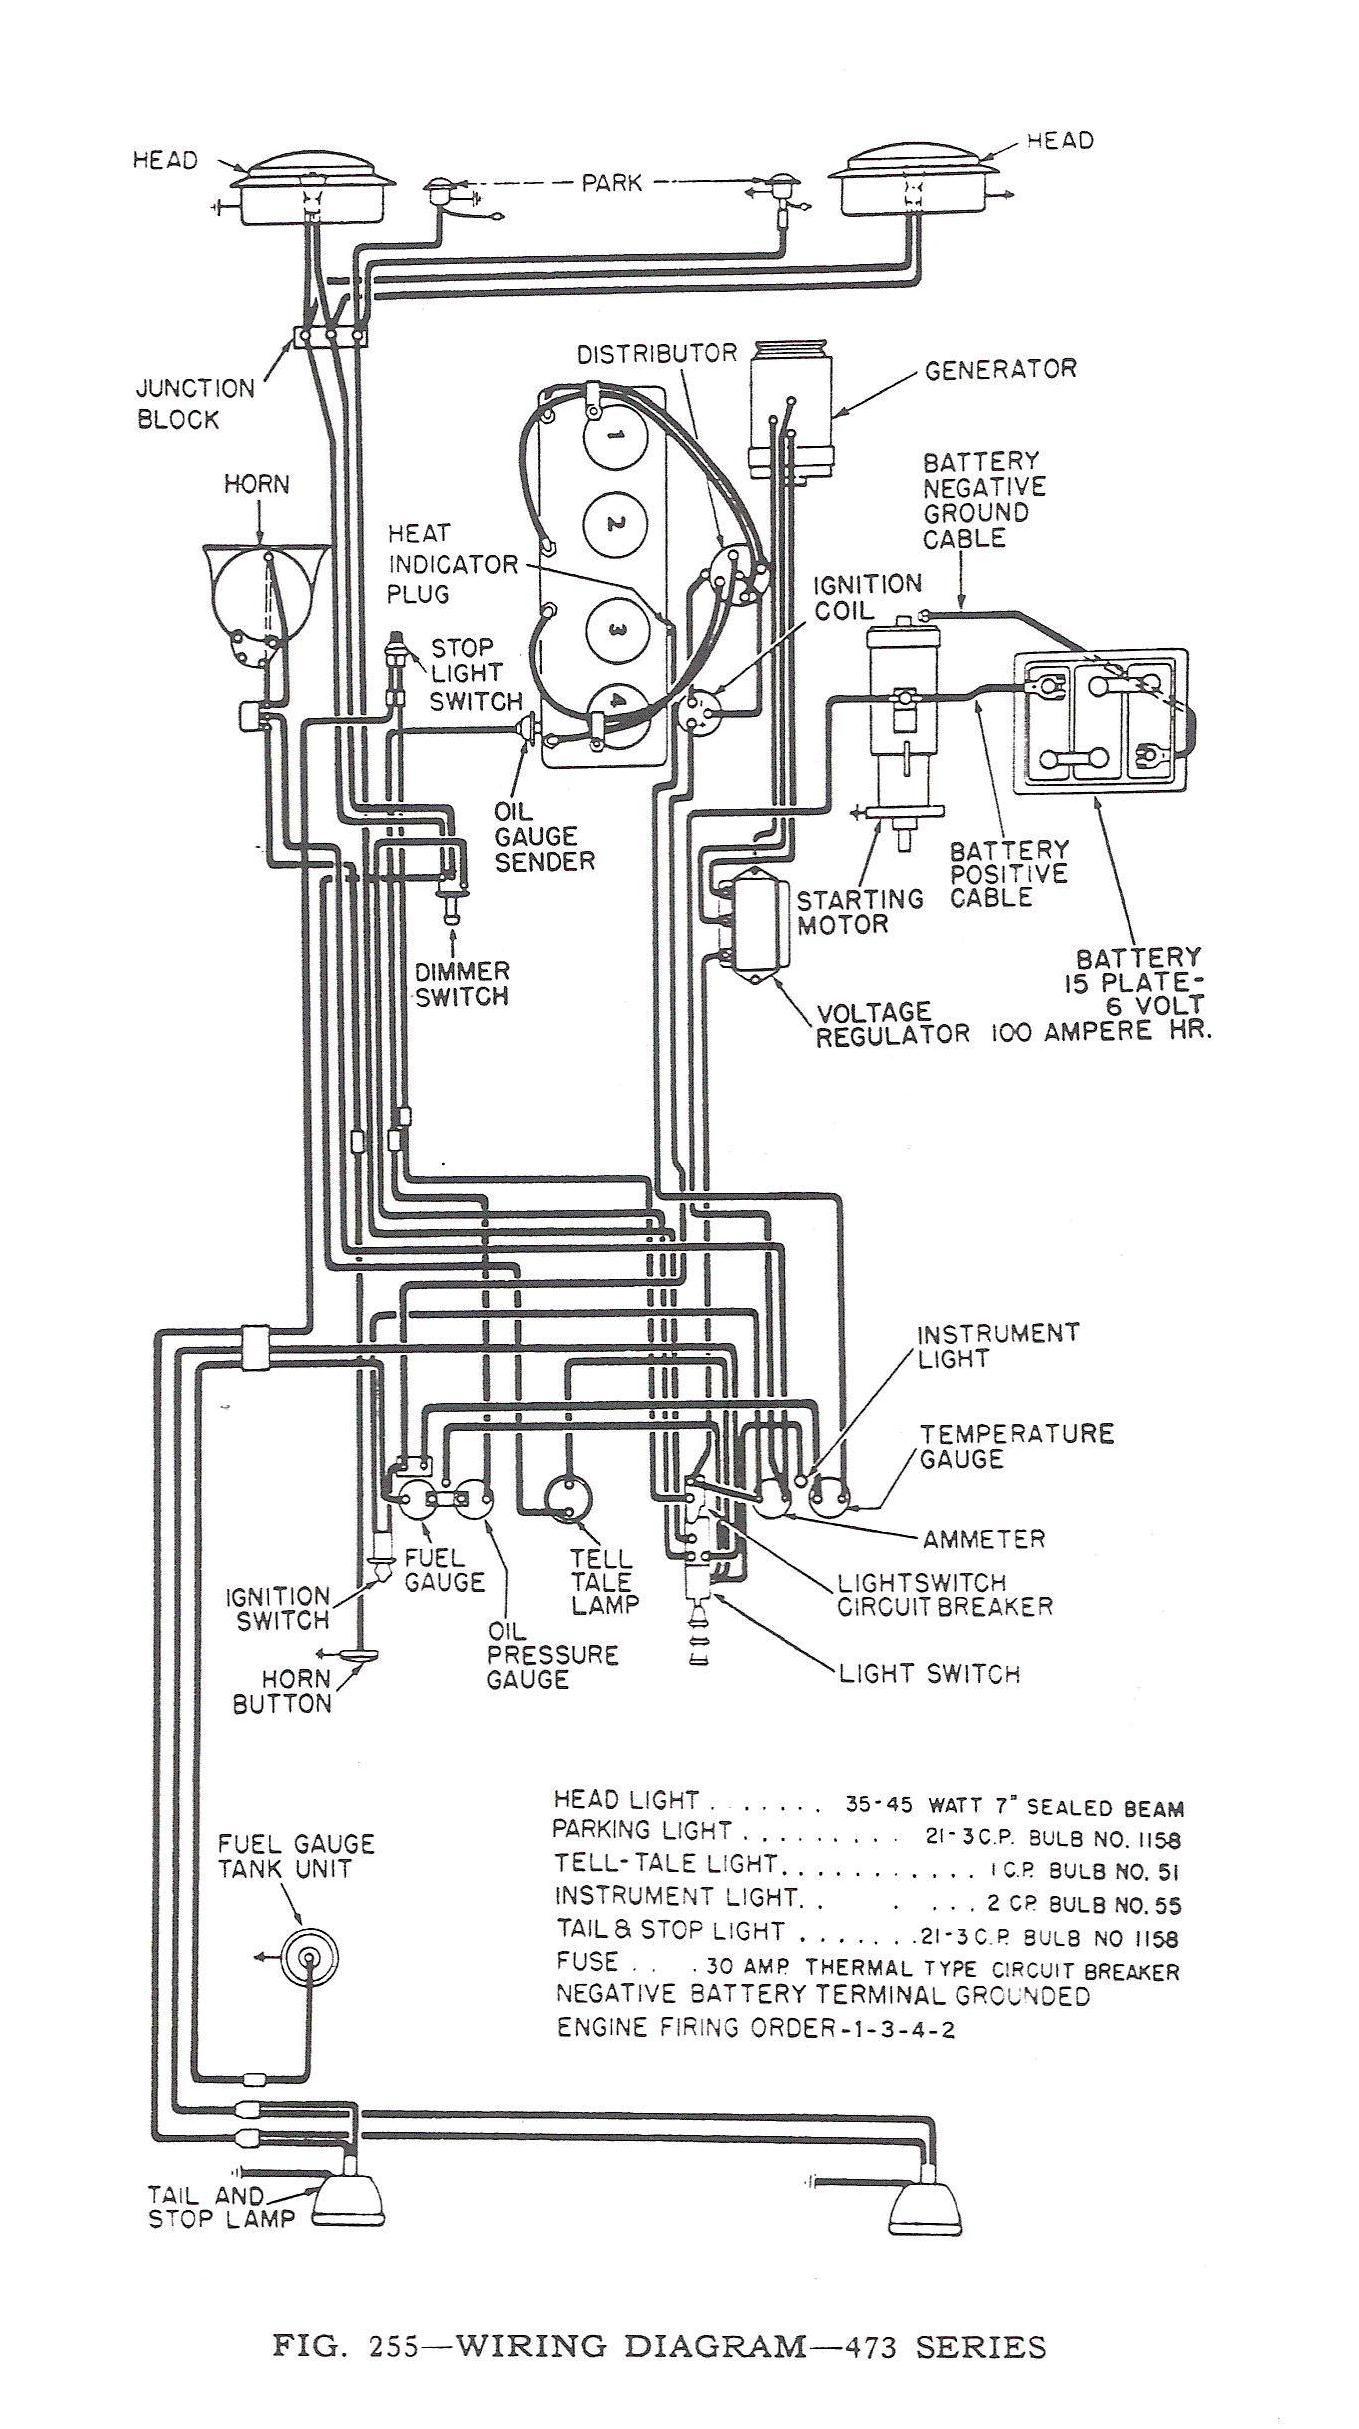 1952 jeep series 473 wiring diagrams google search [ 1359 x 2429 Pixel ]